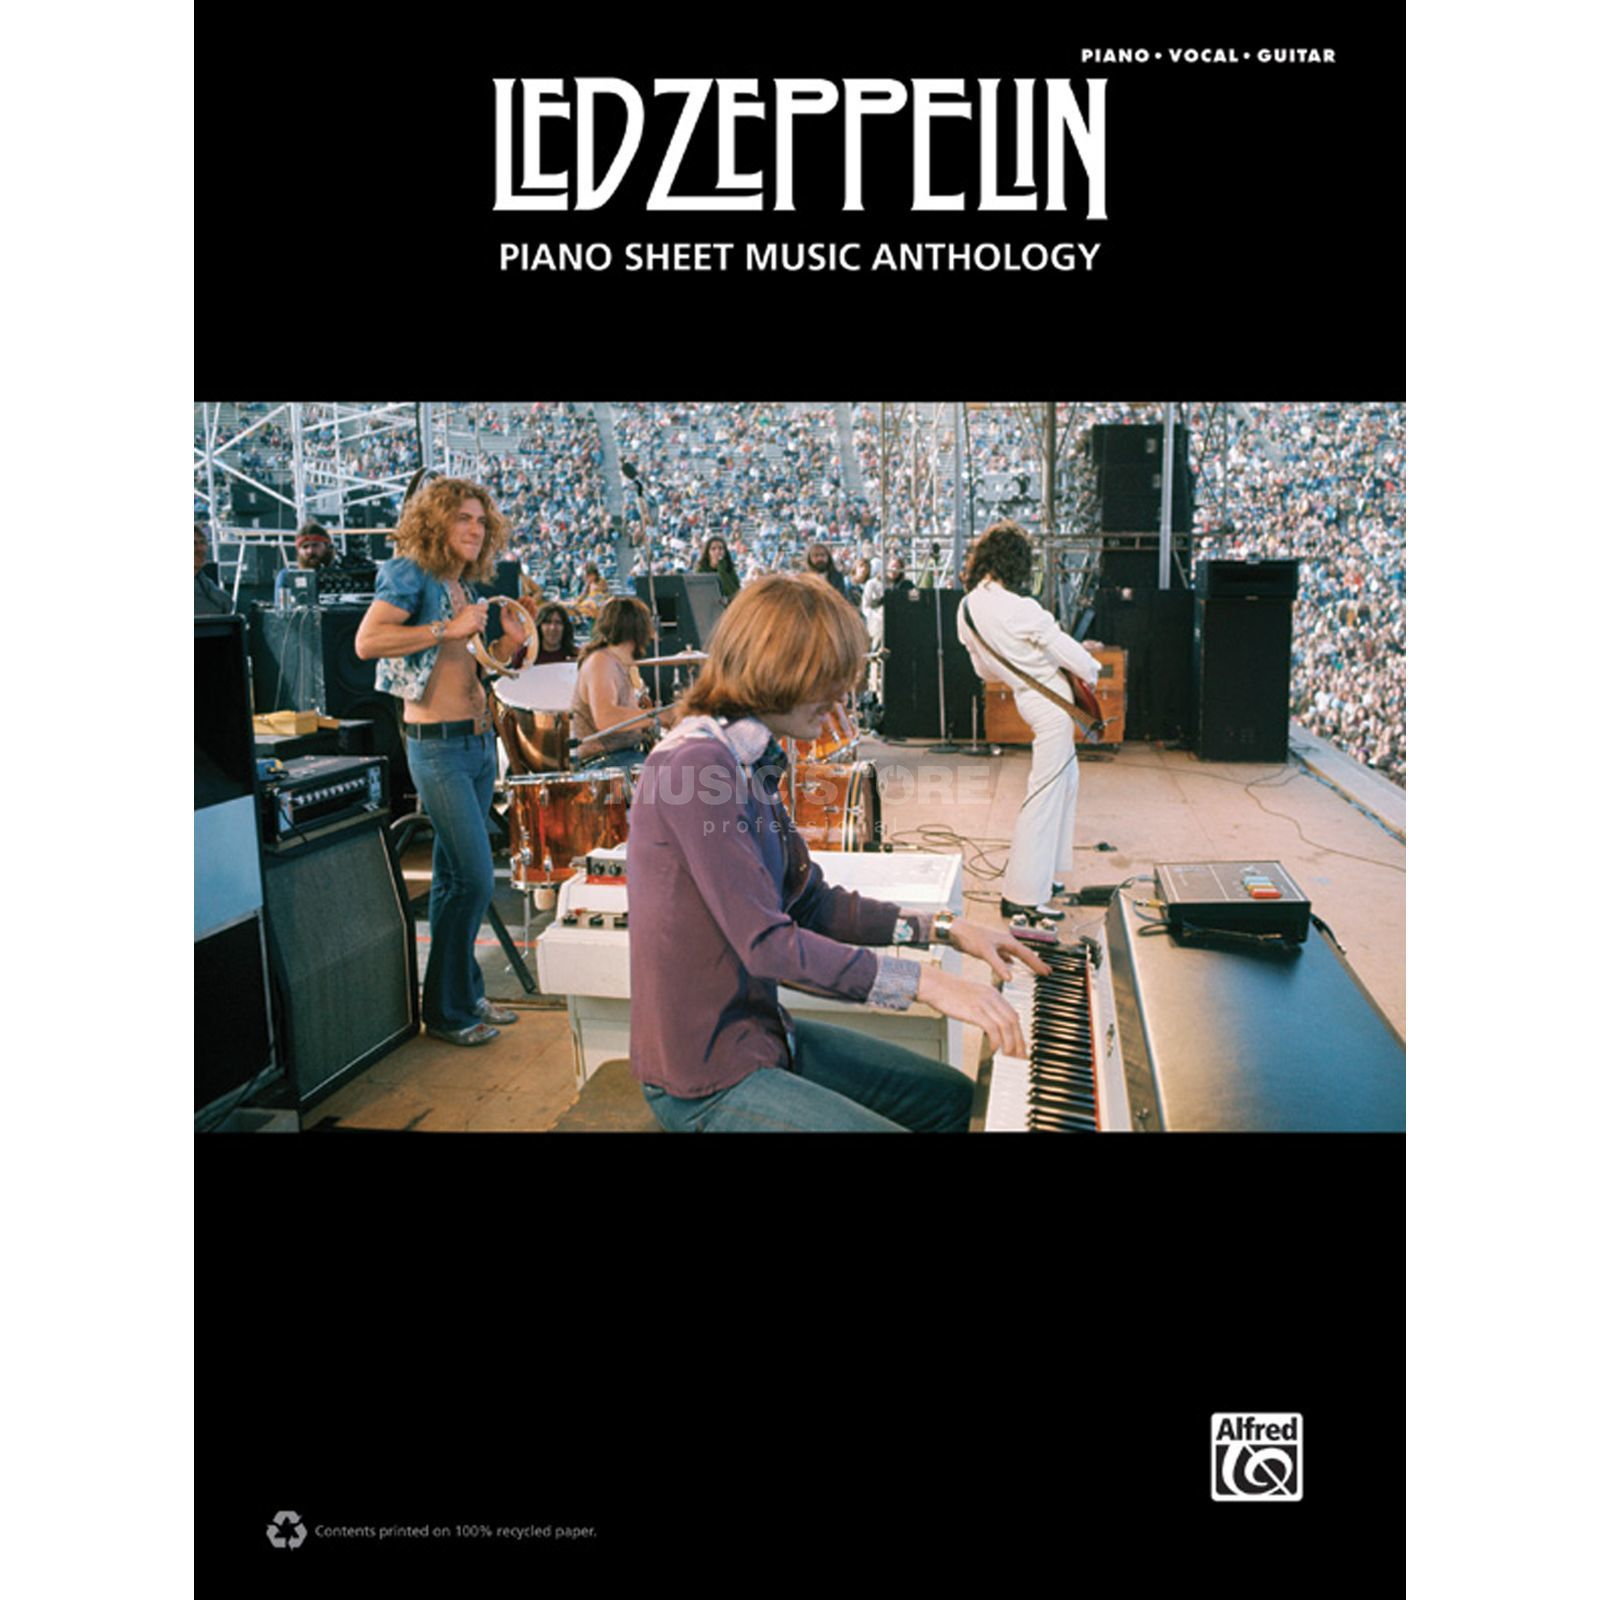 Alfred Music Led Zeppelin: Piano Sheet Music Anthology Produktbild